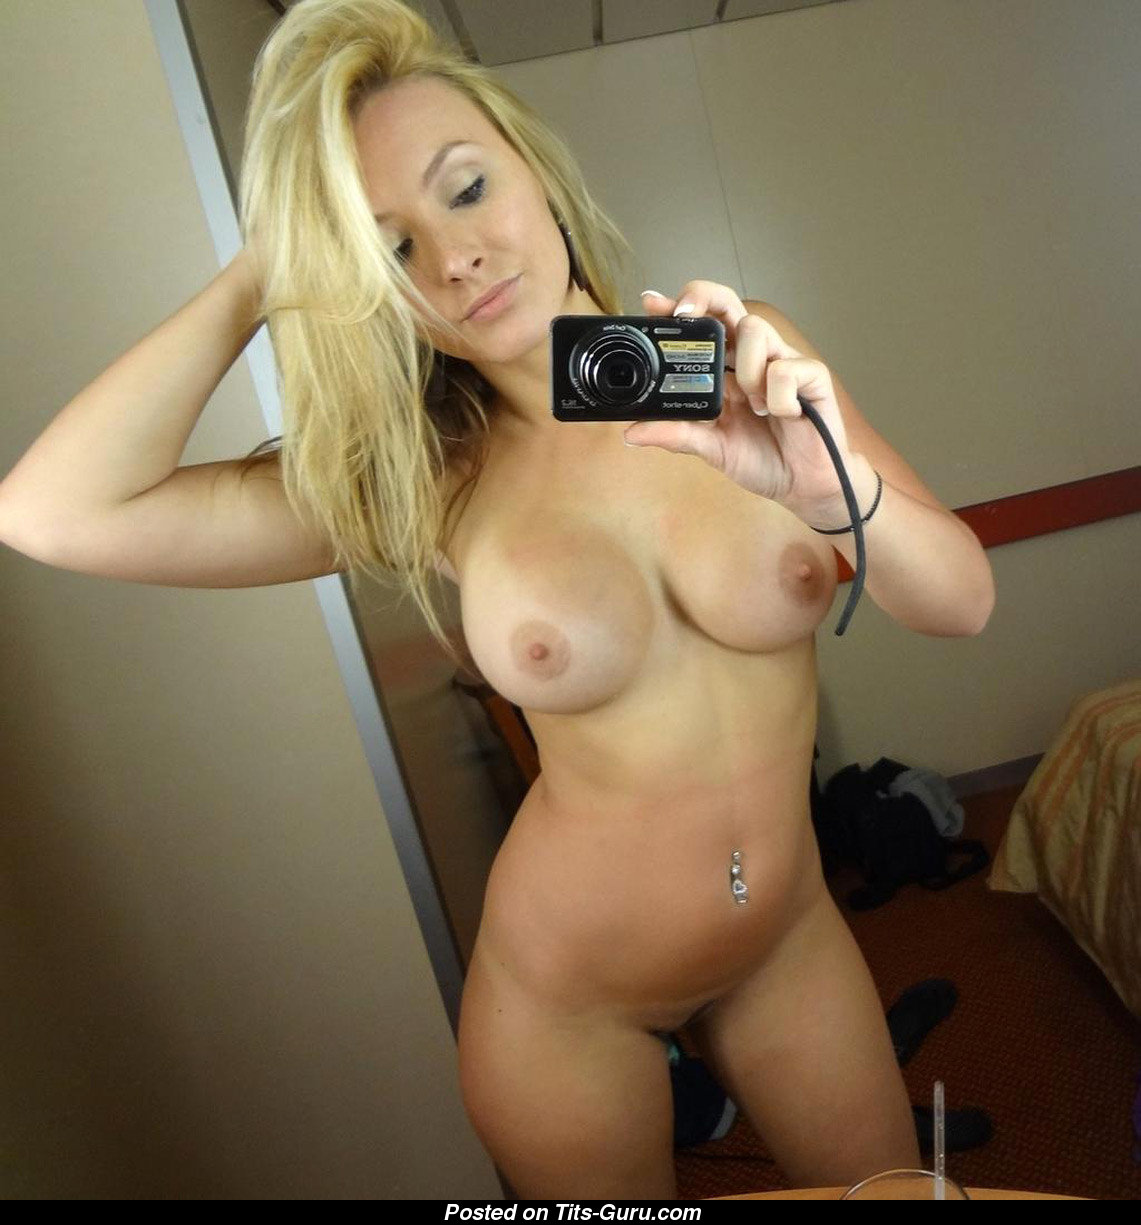 Think, that hot blonde naked xxx selfy there